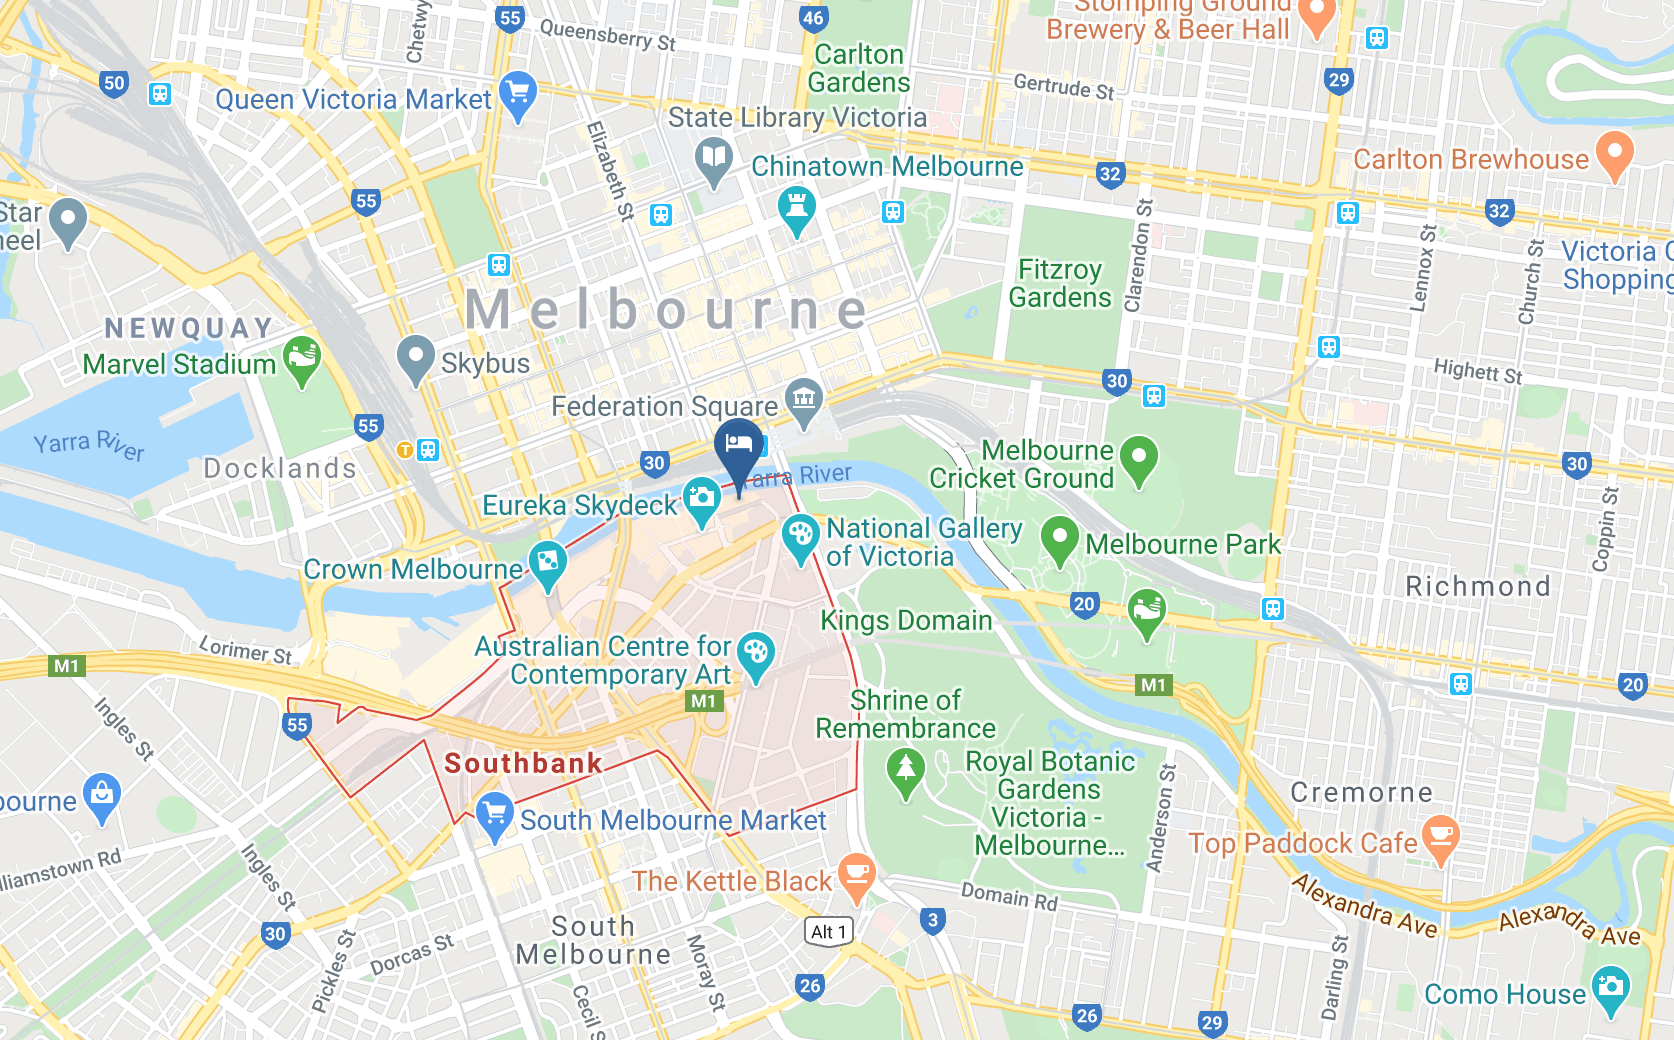 Google Map of The Langham Hotel